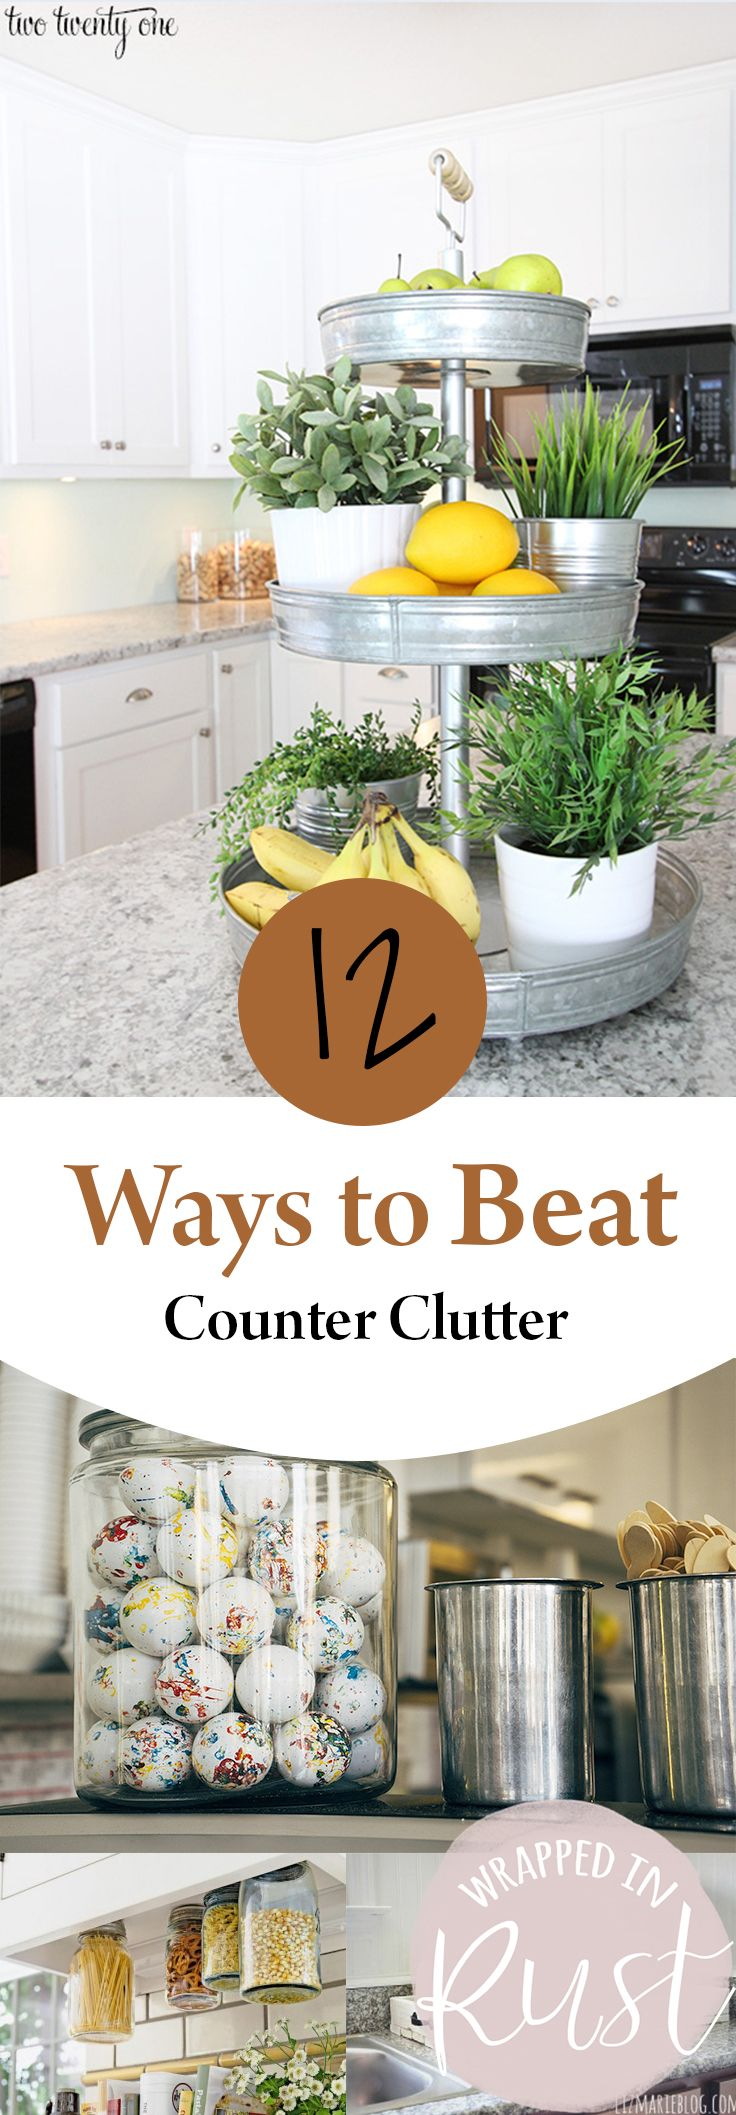 10 ways to hide cord clutter | organize cords, clean clean and